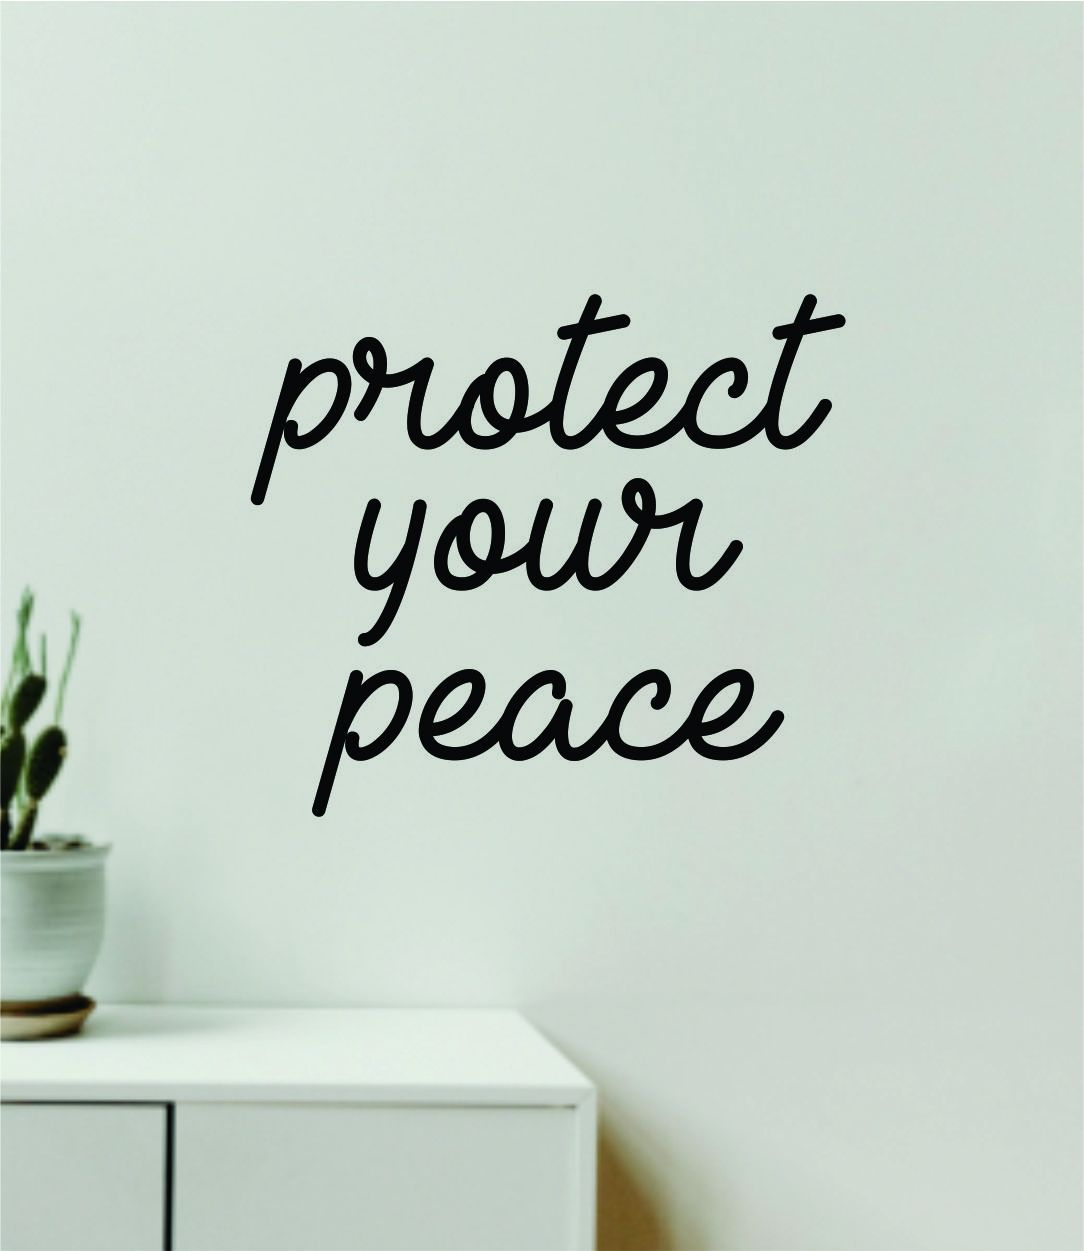 Protect Your Peace Quote Wall Decal Sticker Vinyl Art Decor Bedroom Room Girls Inspirational Trendy Yoga Meditate Buddha Namaste - yellow